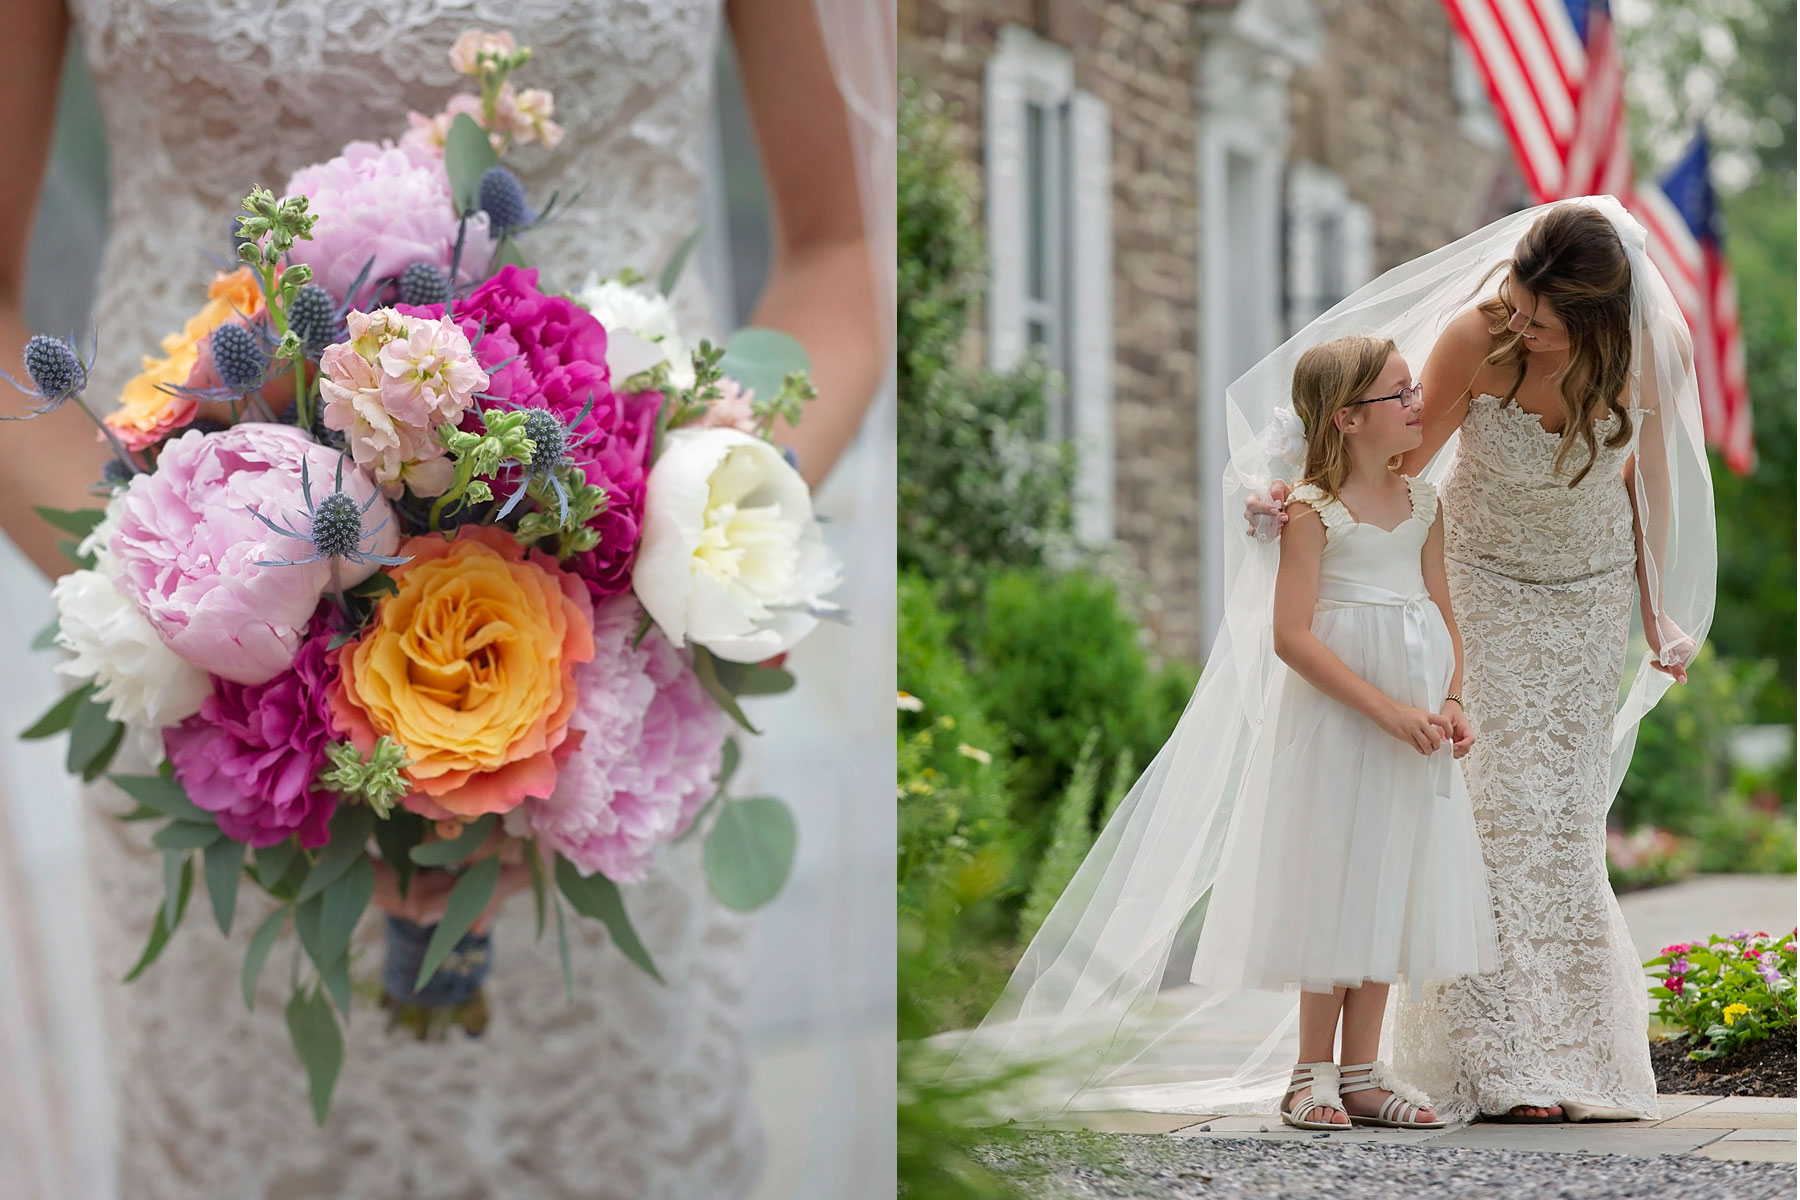 bride looks at flower girl while posing for a photo, bridal bouquet also pictured